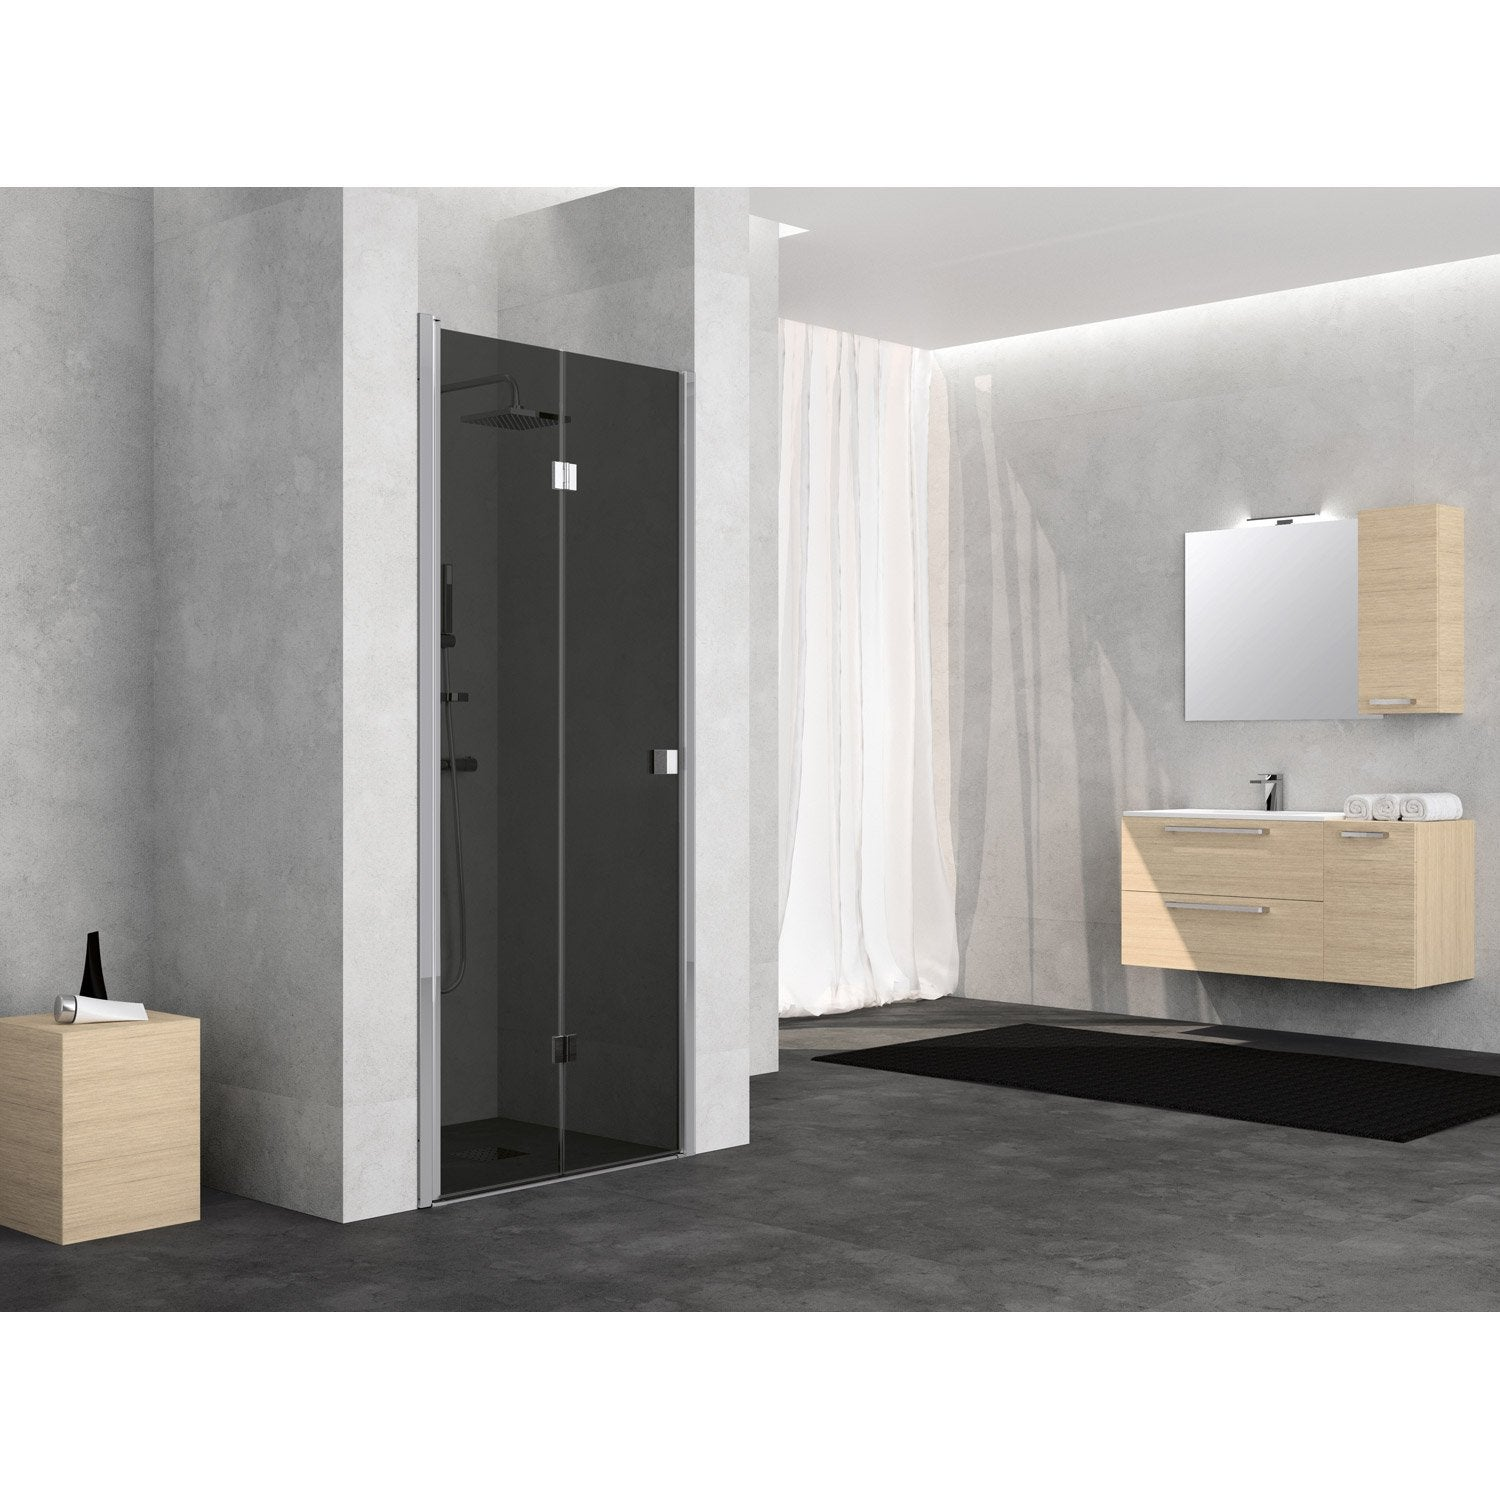 porte de douche pivot pliante 80 cm fum neo leroy merlin. Black Bedroom Furniture Sets. Home Design Ideas